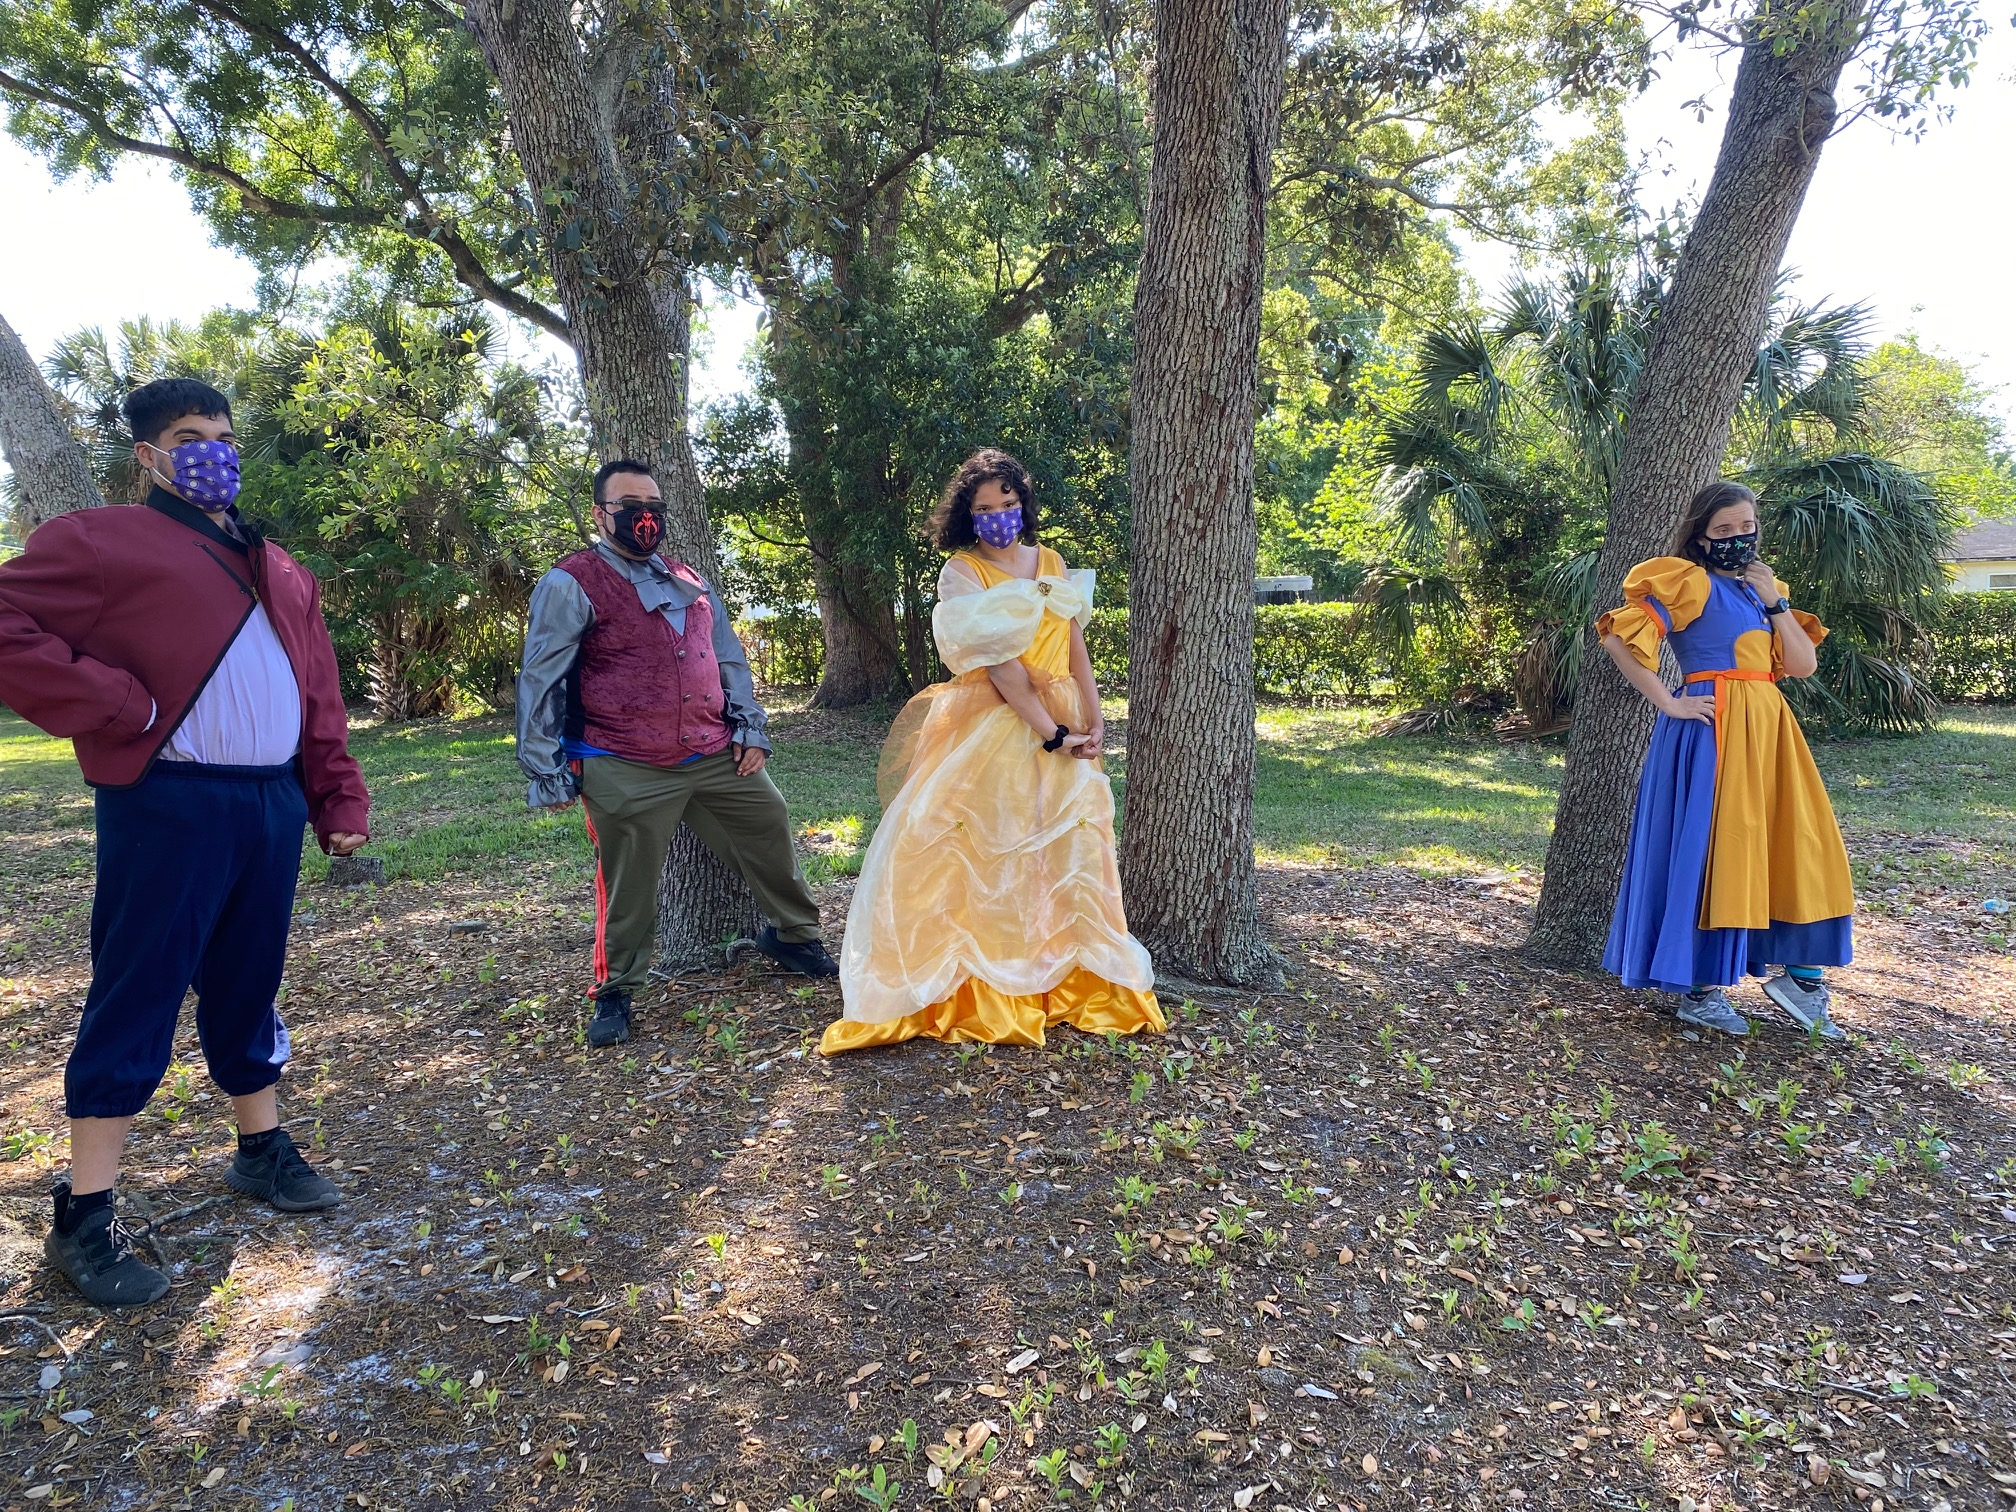 Image shows four actors dressed up as members of the Beauty and the Best cast standing outside in front of trees.